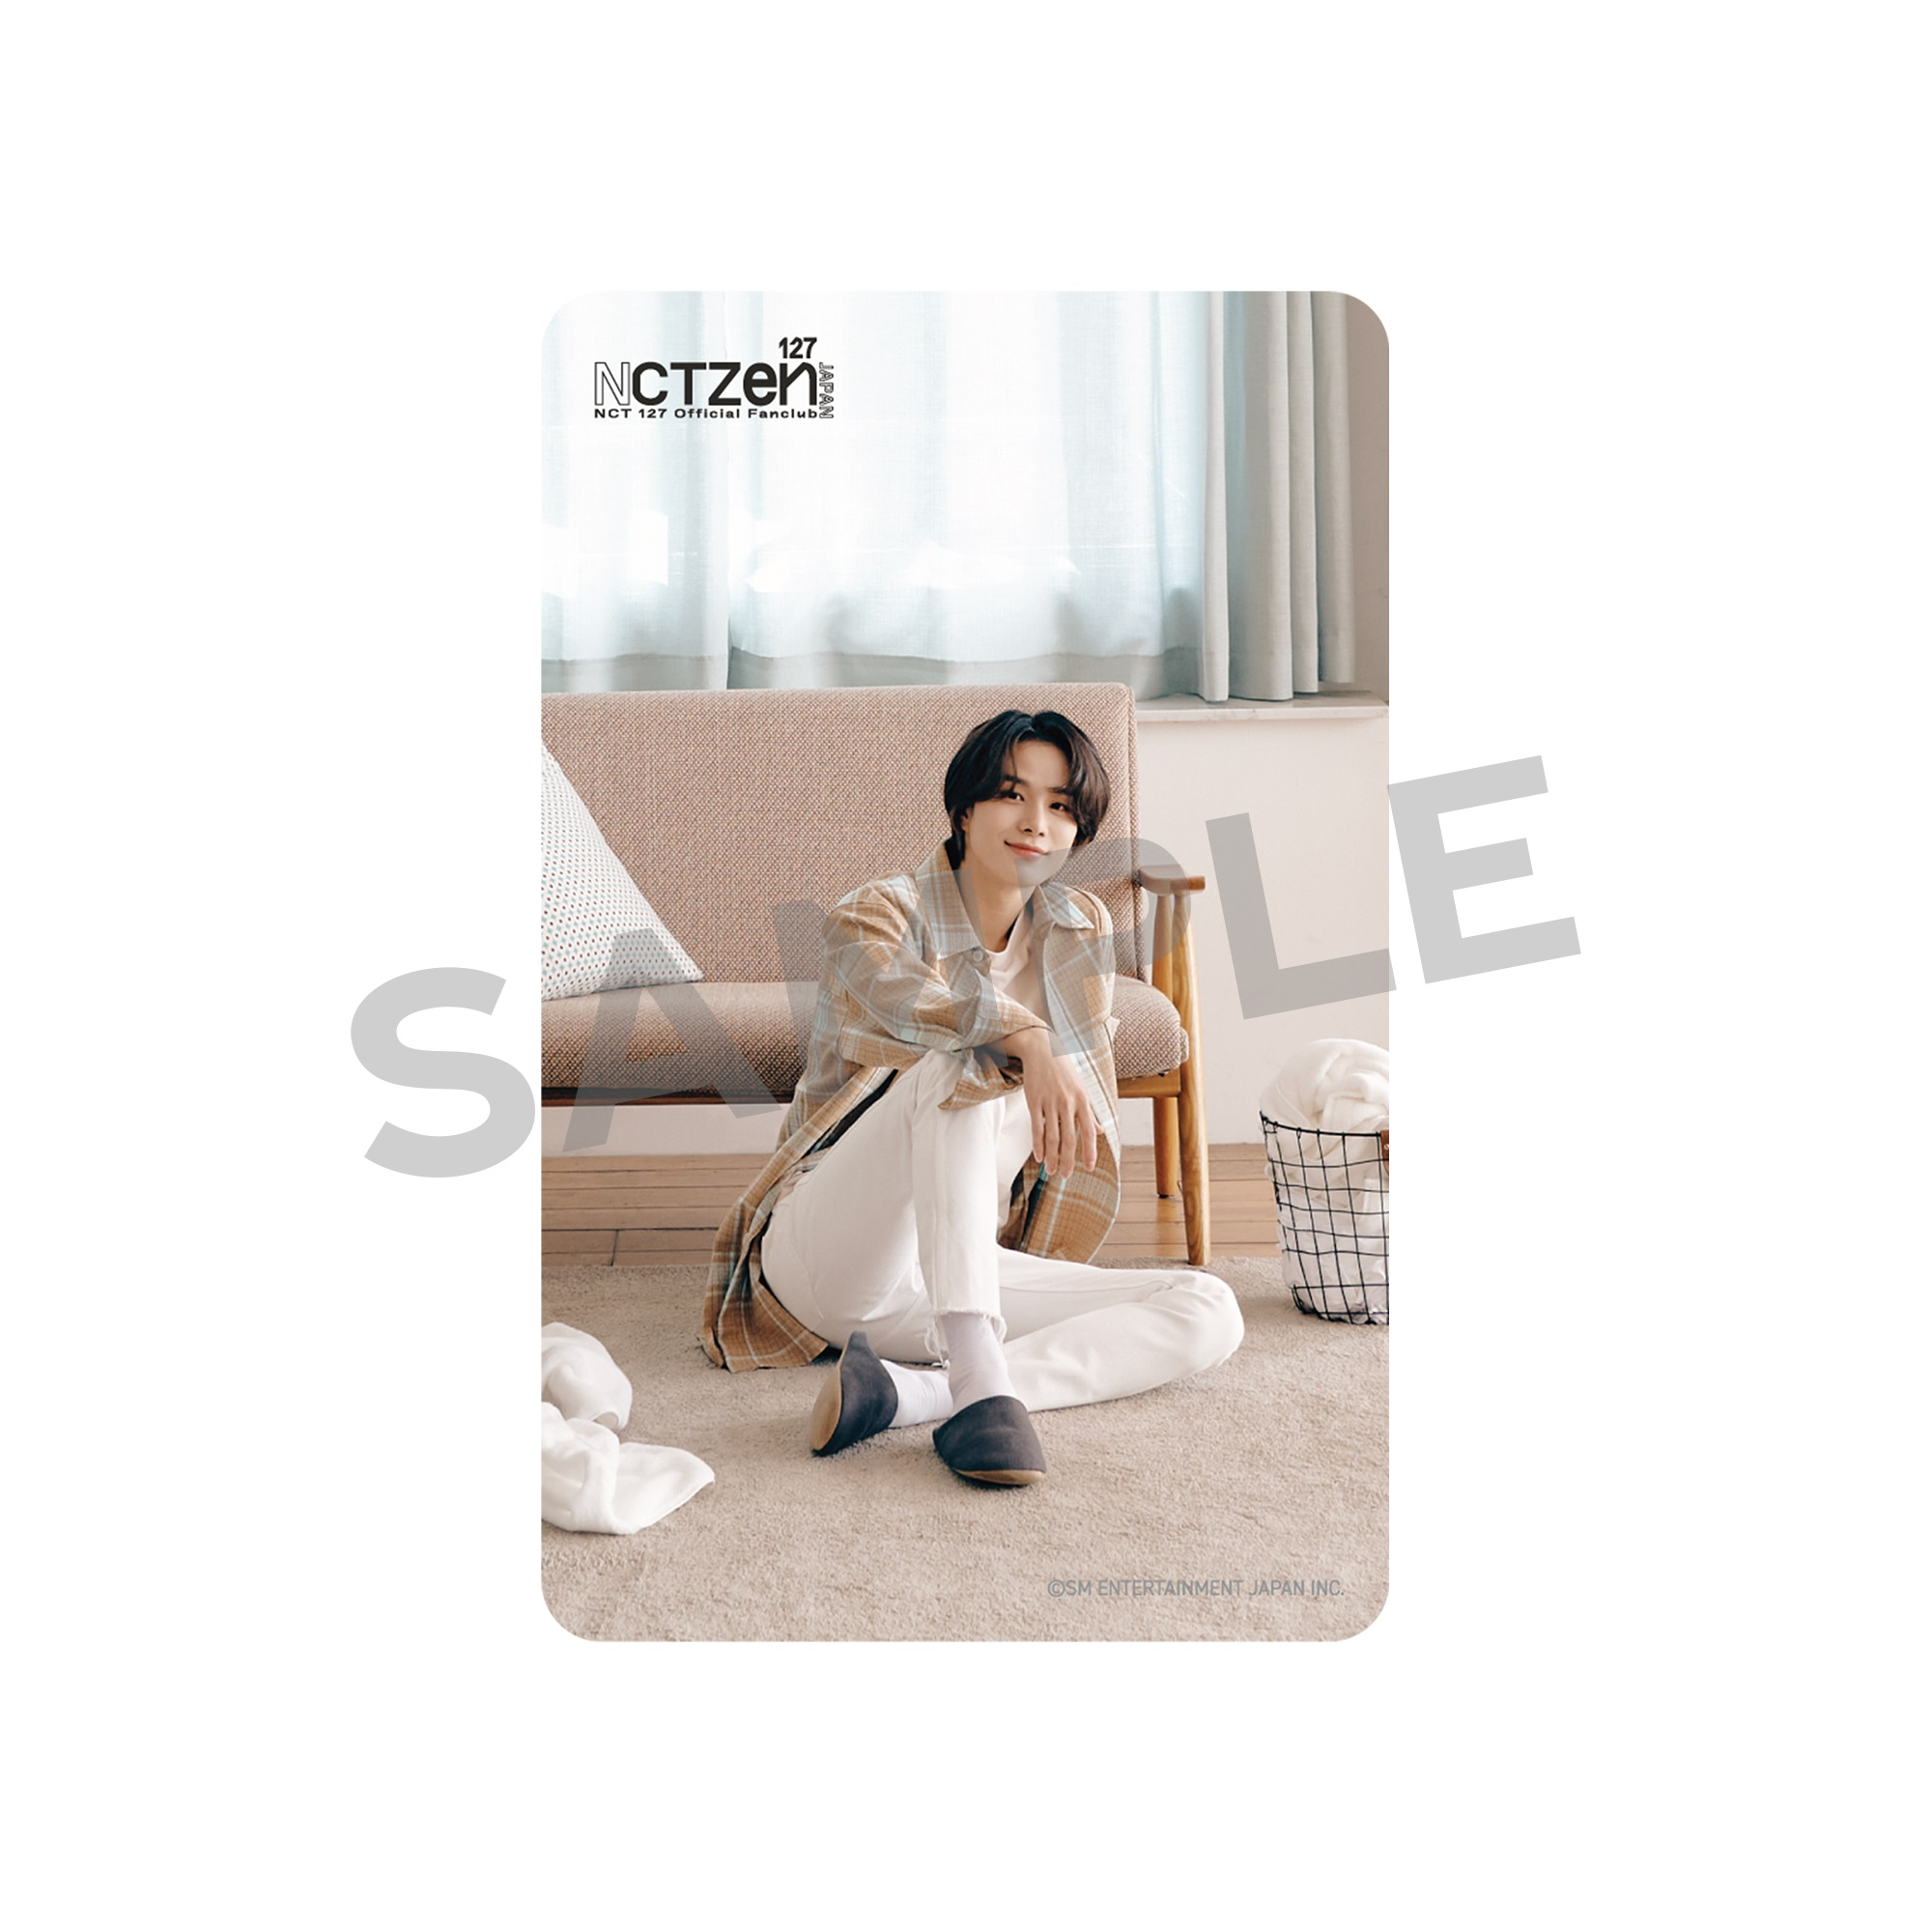 【NCT 127】『NCT 127 OFFICIAL BOOK Vol.4』グッズを、メンバー別に詳しく紹介!_8_4